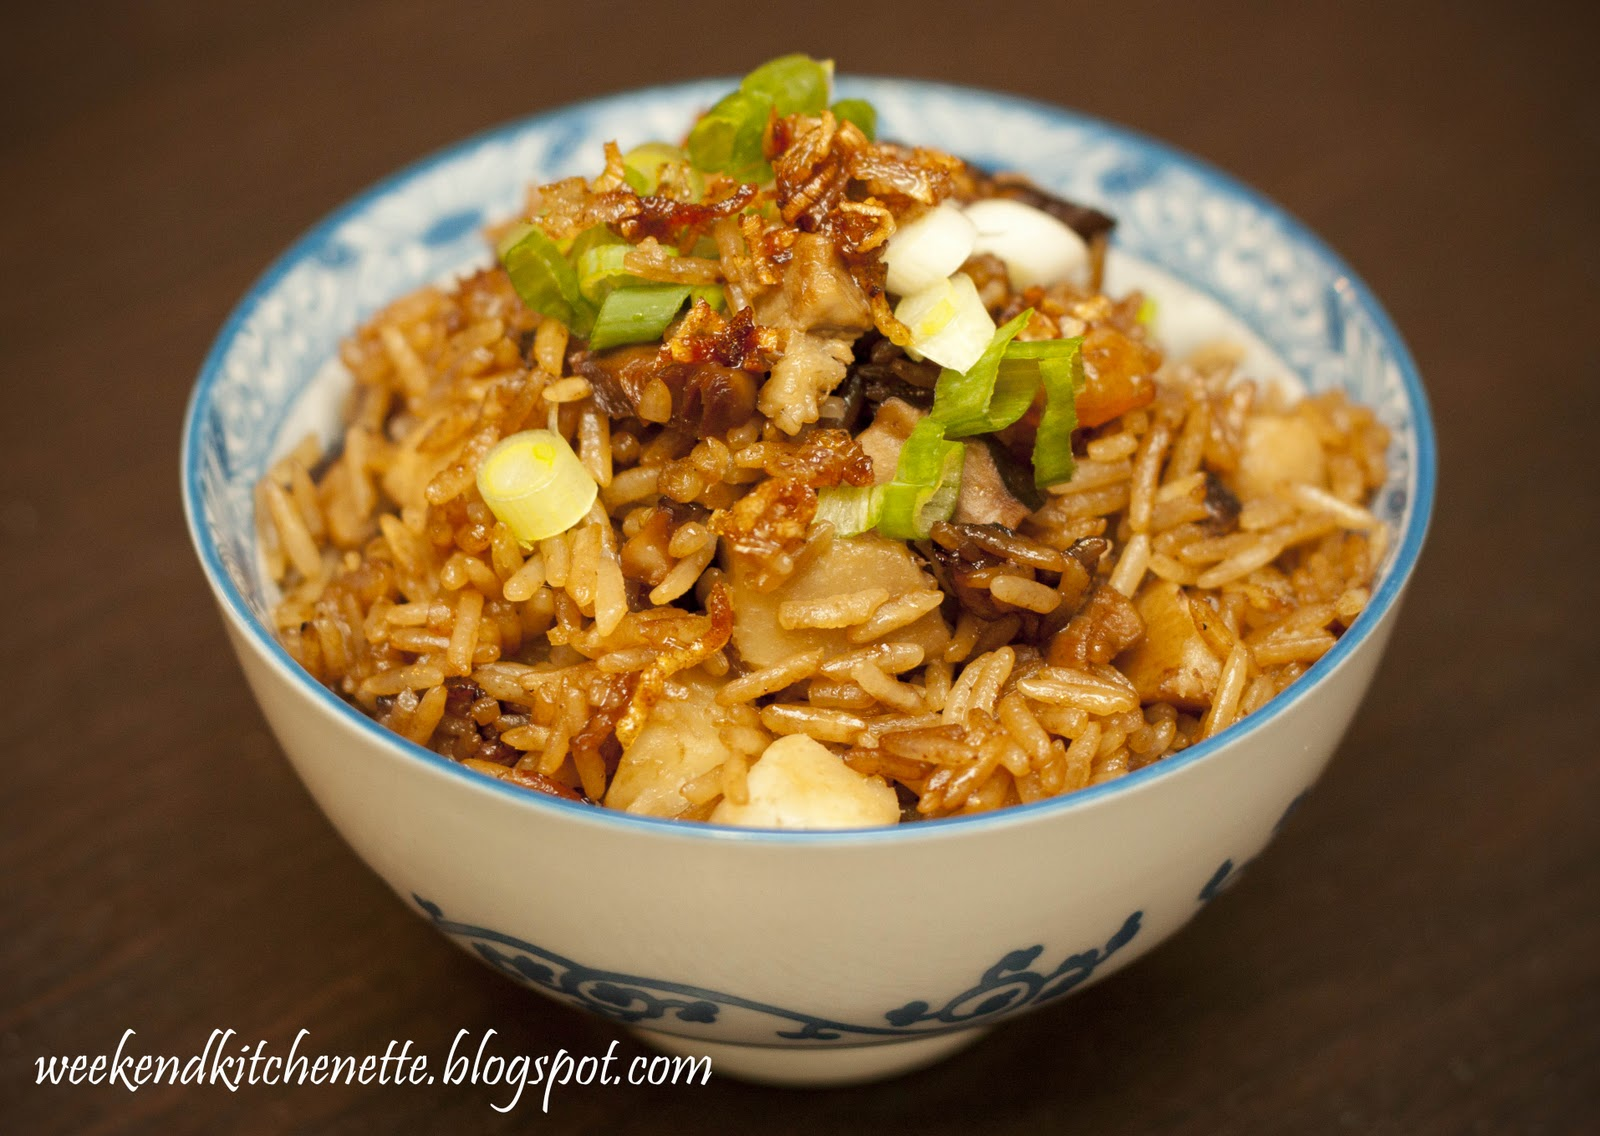 Weekend Kitchenette: Fragrant Yam rice (Taro rice)